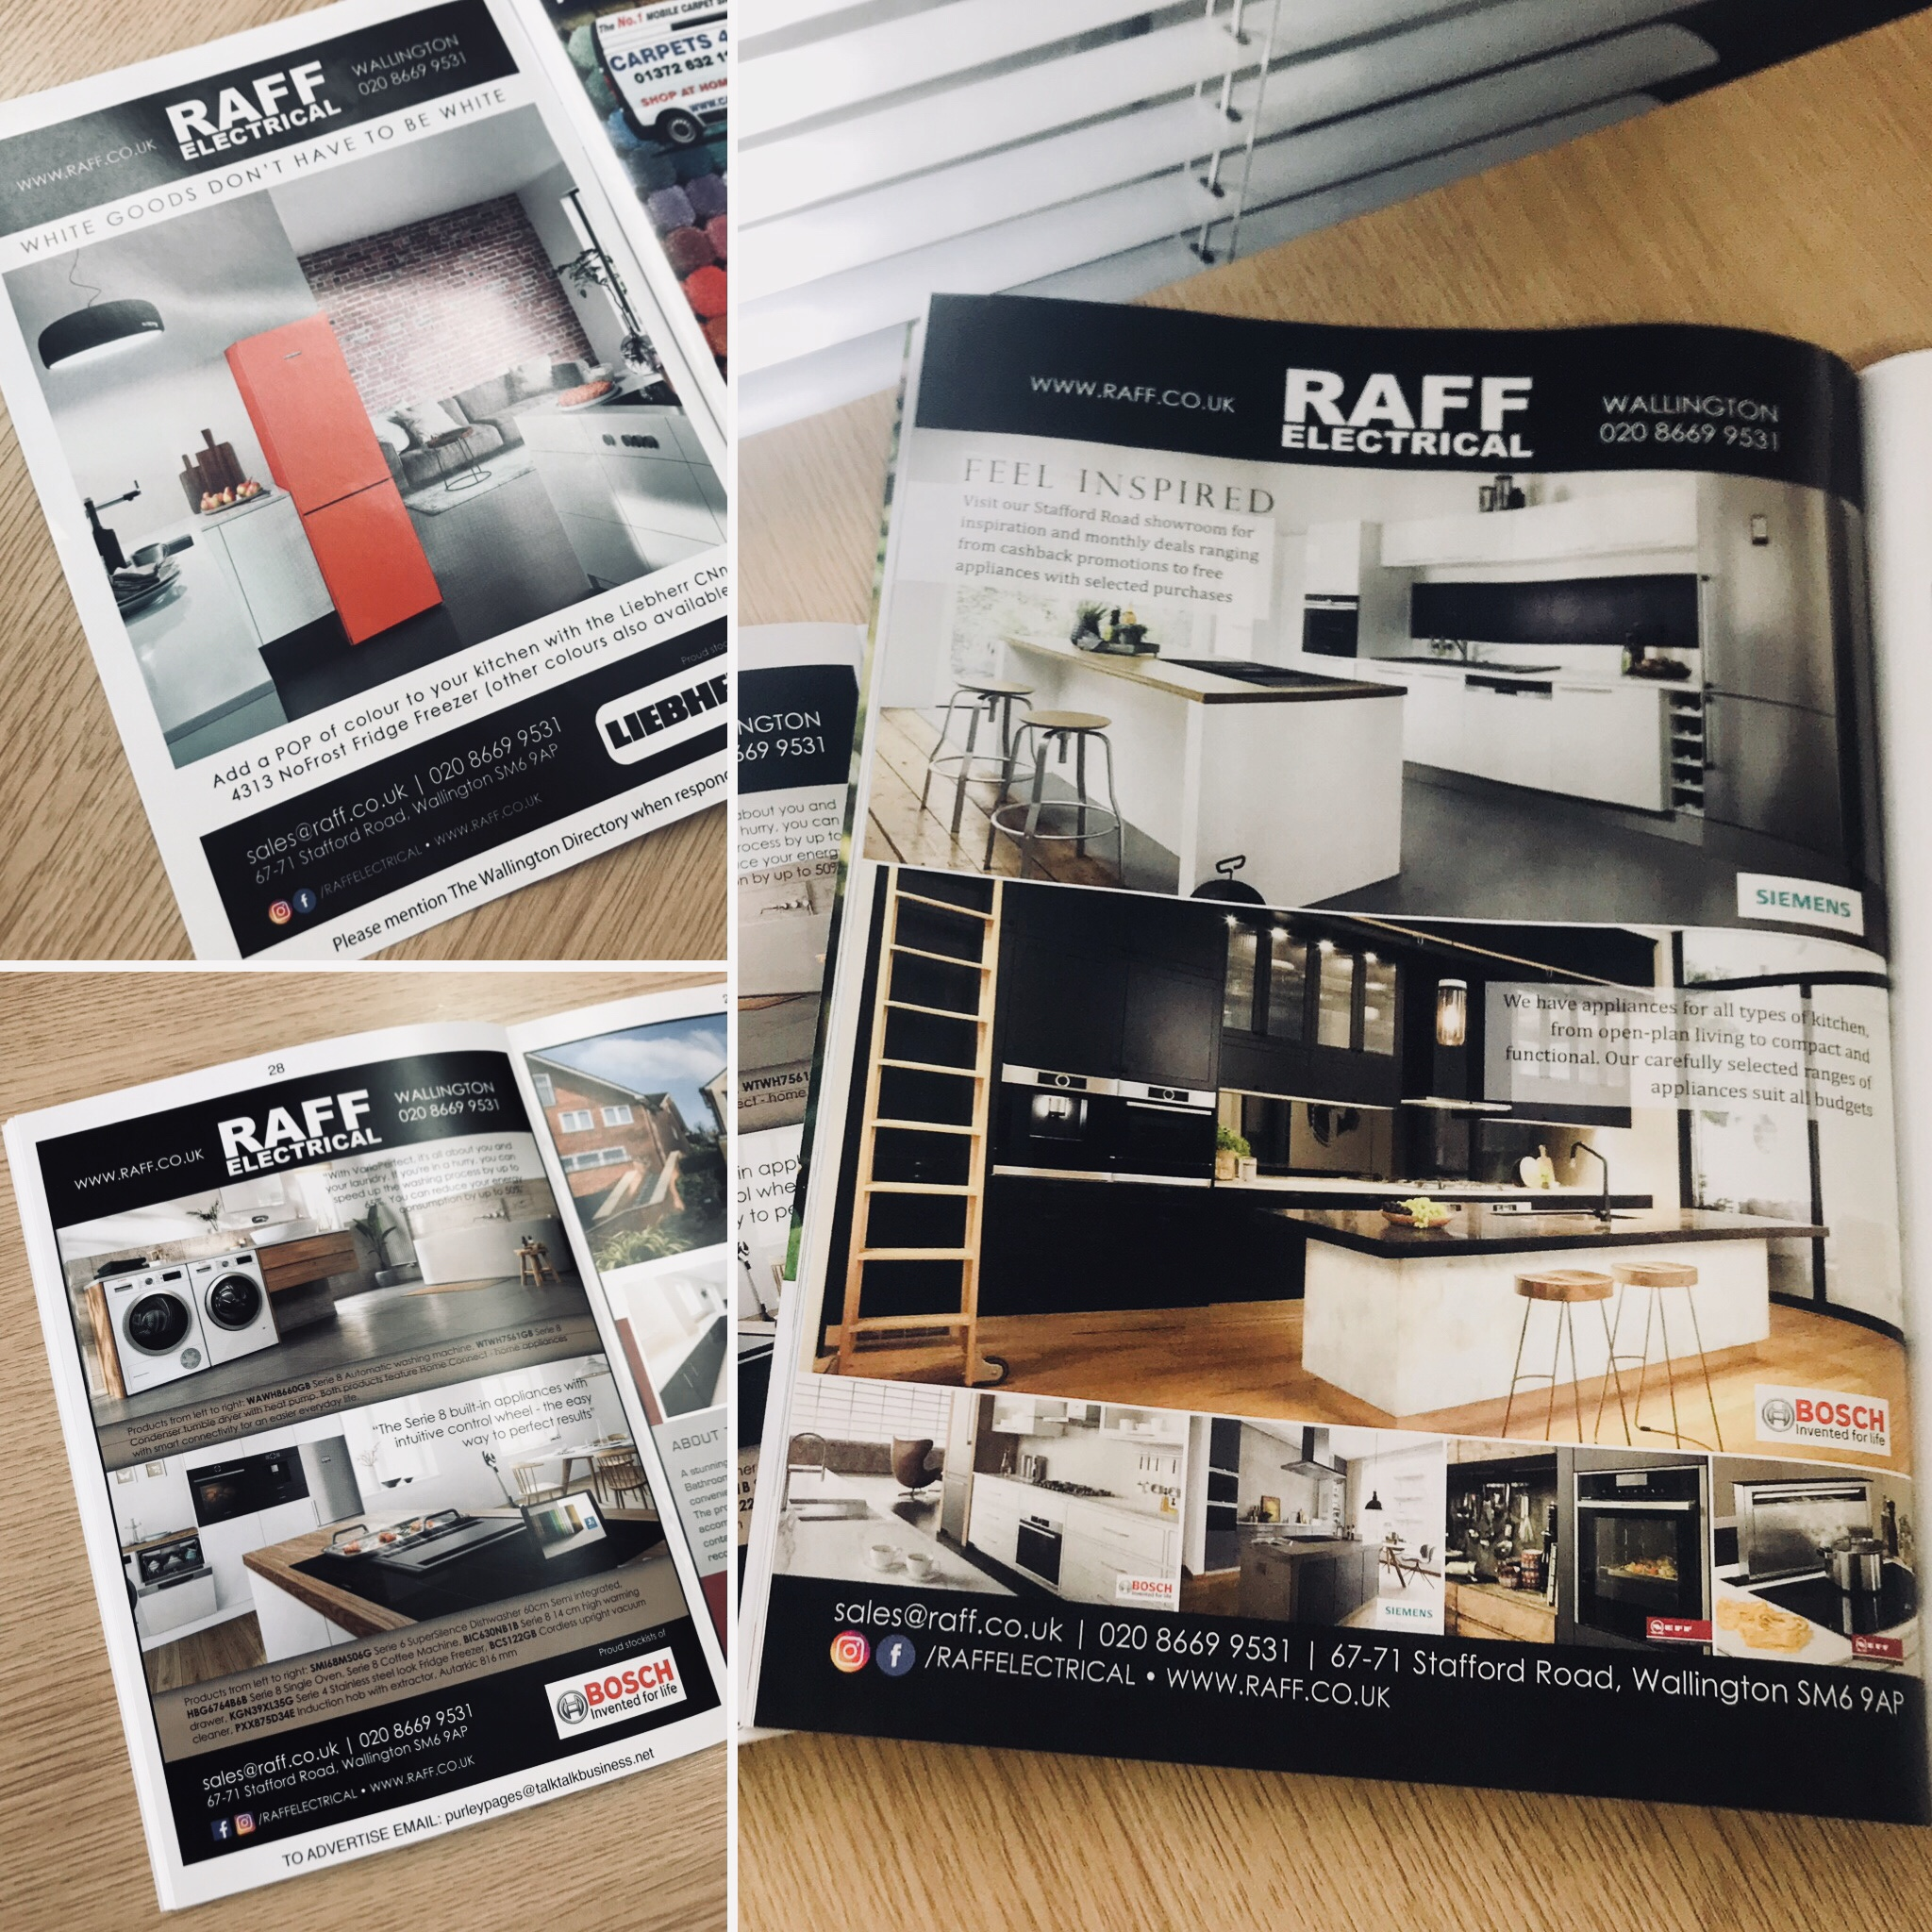 More Print Design for Raff Electrical